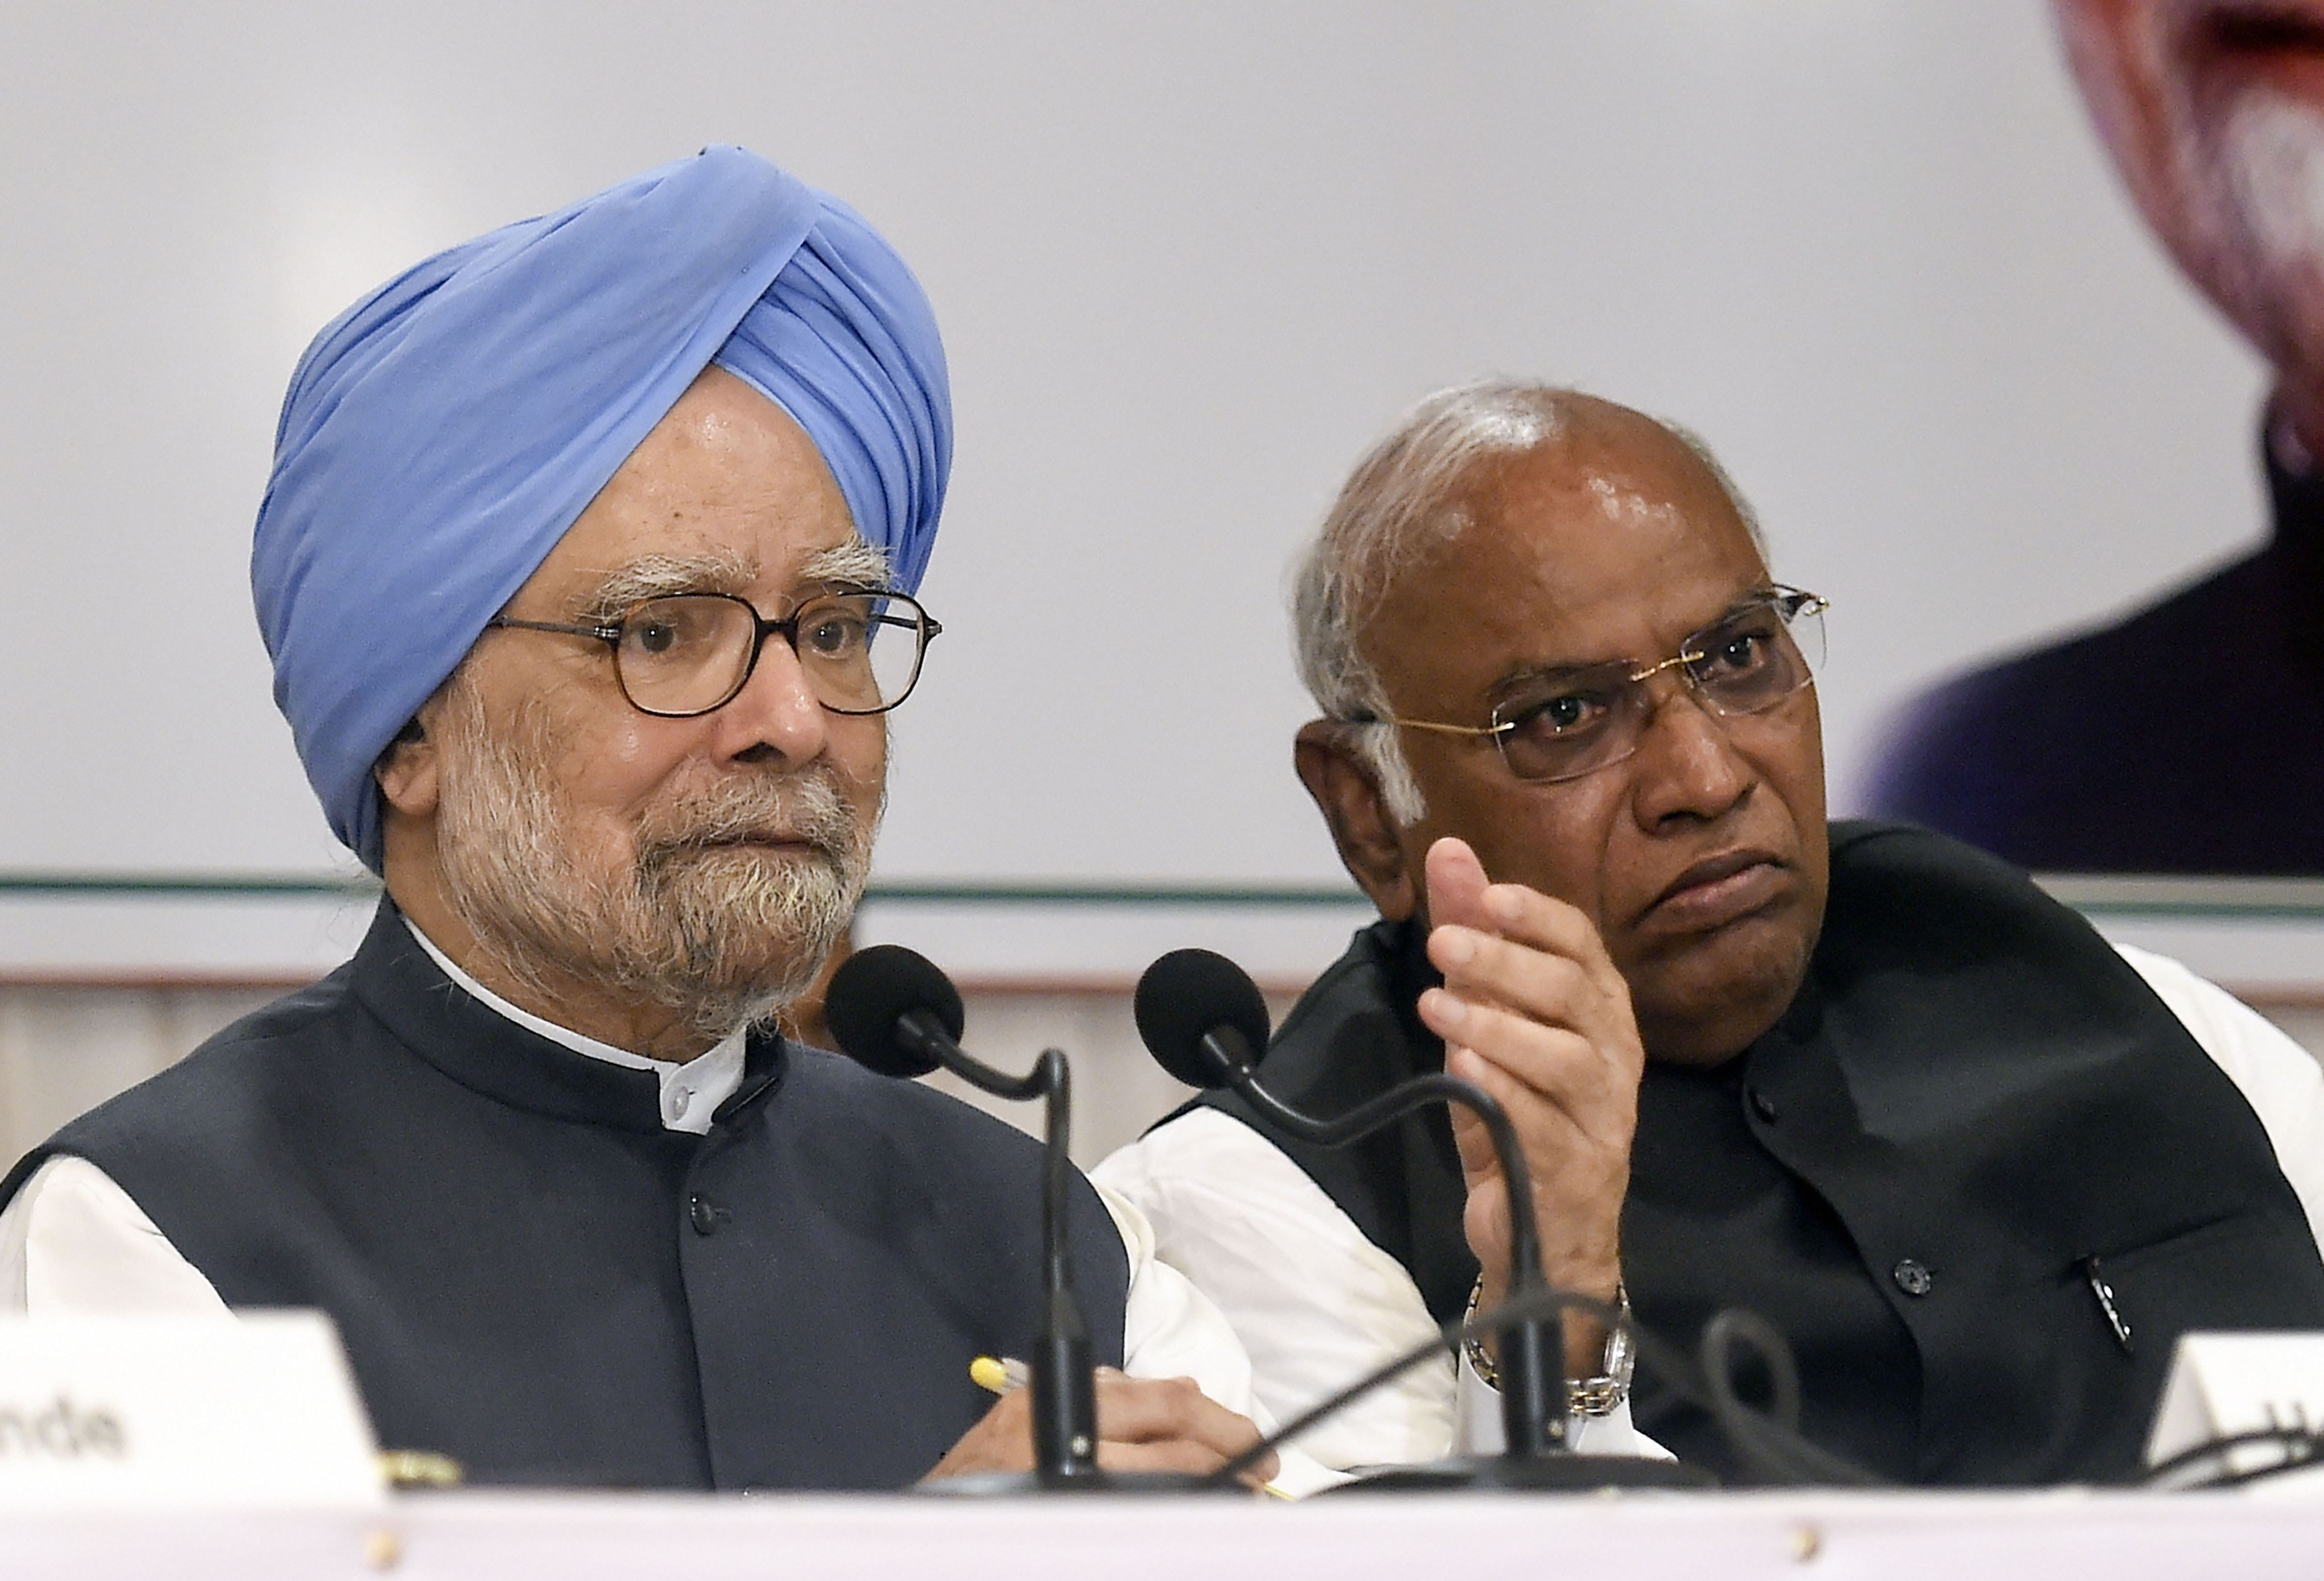 Senior Congress leader and former Prime Minister Manmohan Singh, along with party leader Mallikarjun Kharge, addresses a press conference, in Mumbai on Thursday, October 17, 2019